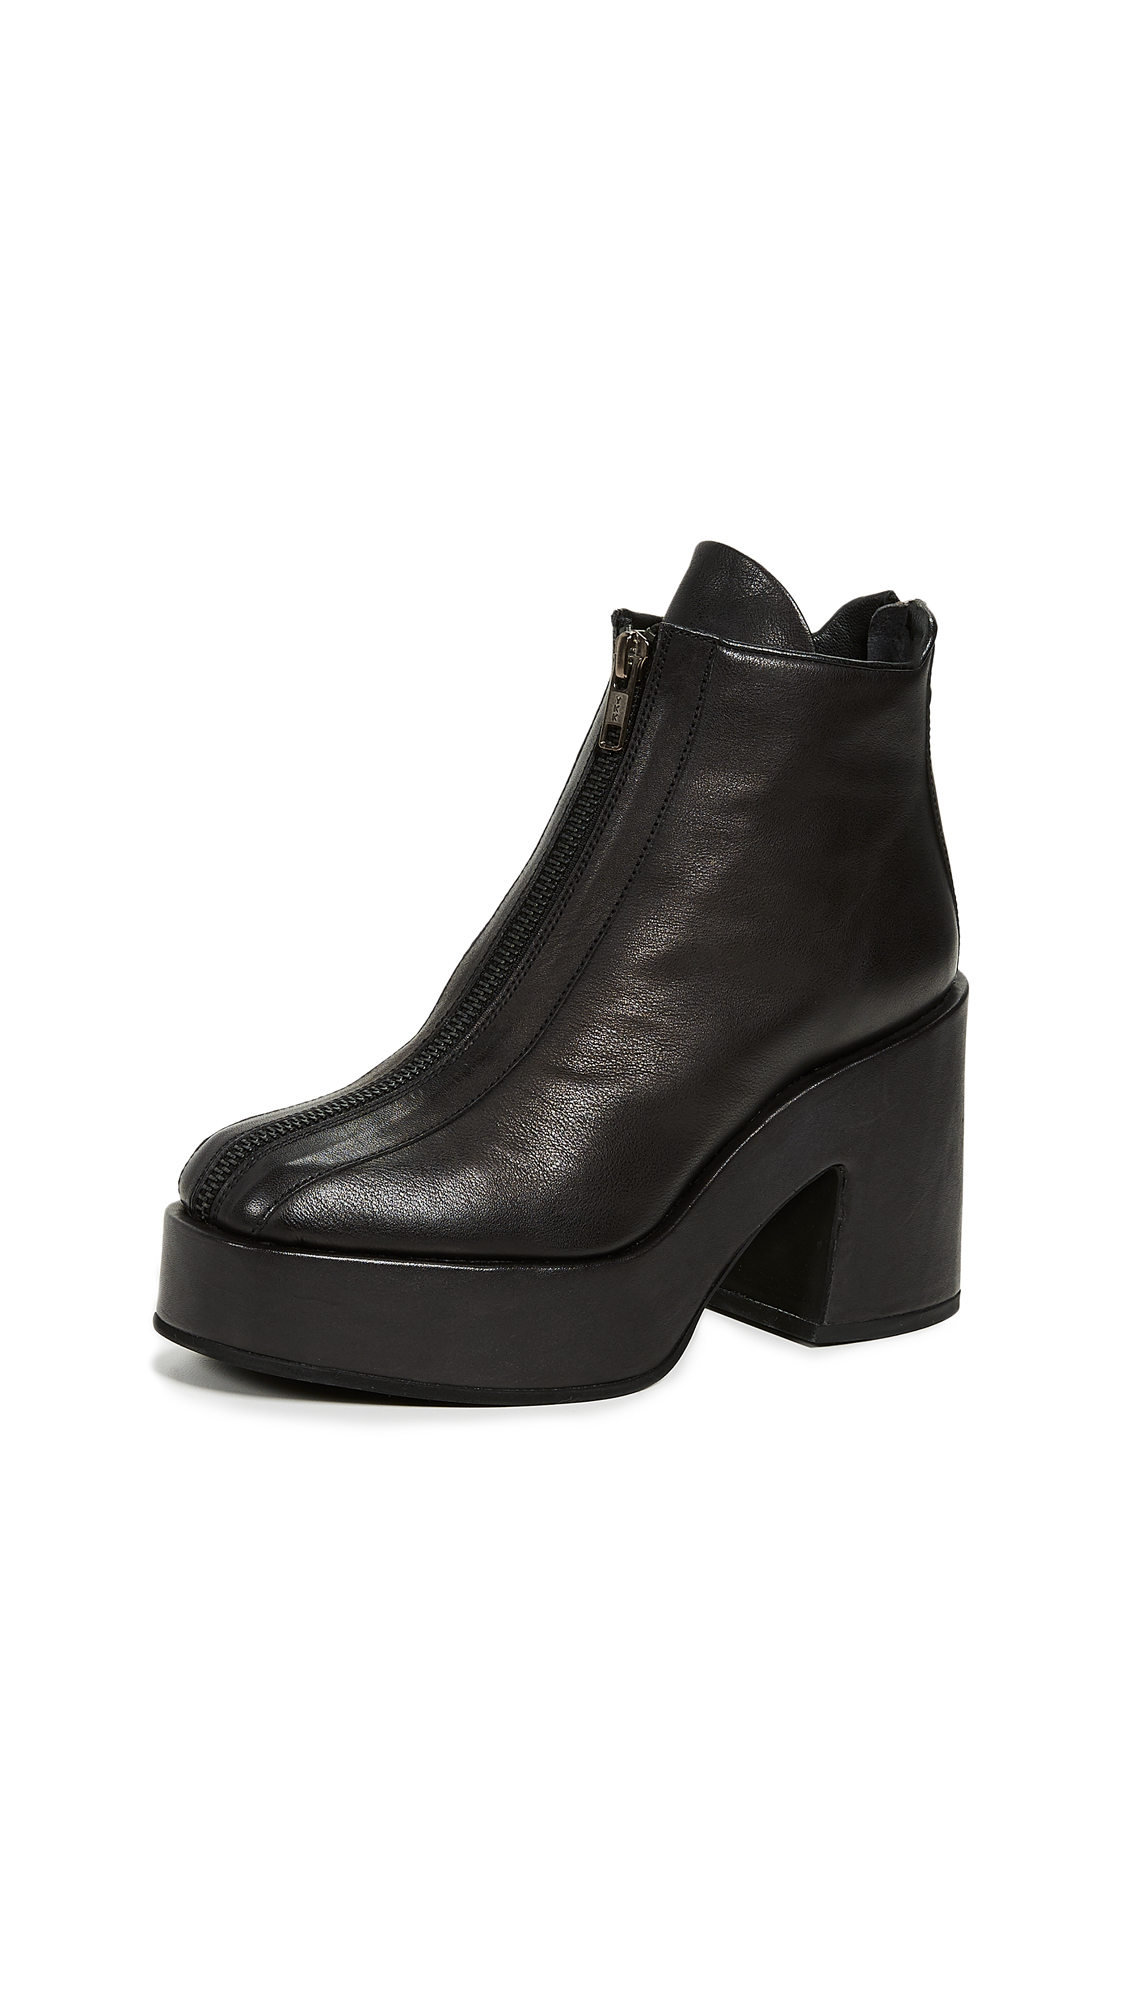 LD Tuttle The Battle Block Heel Ankle Boots - Black